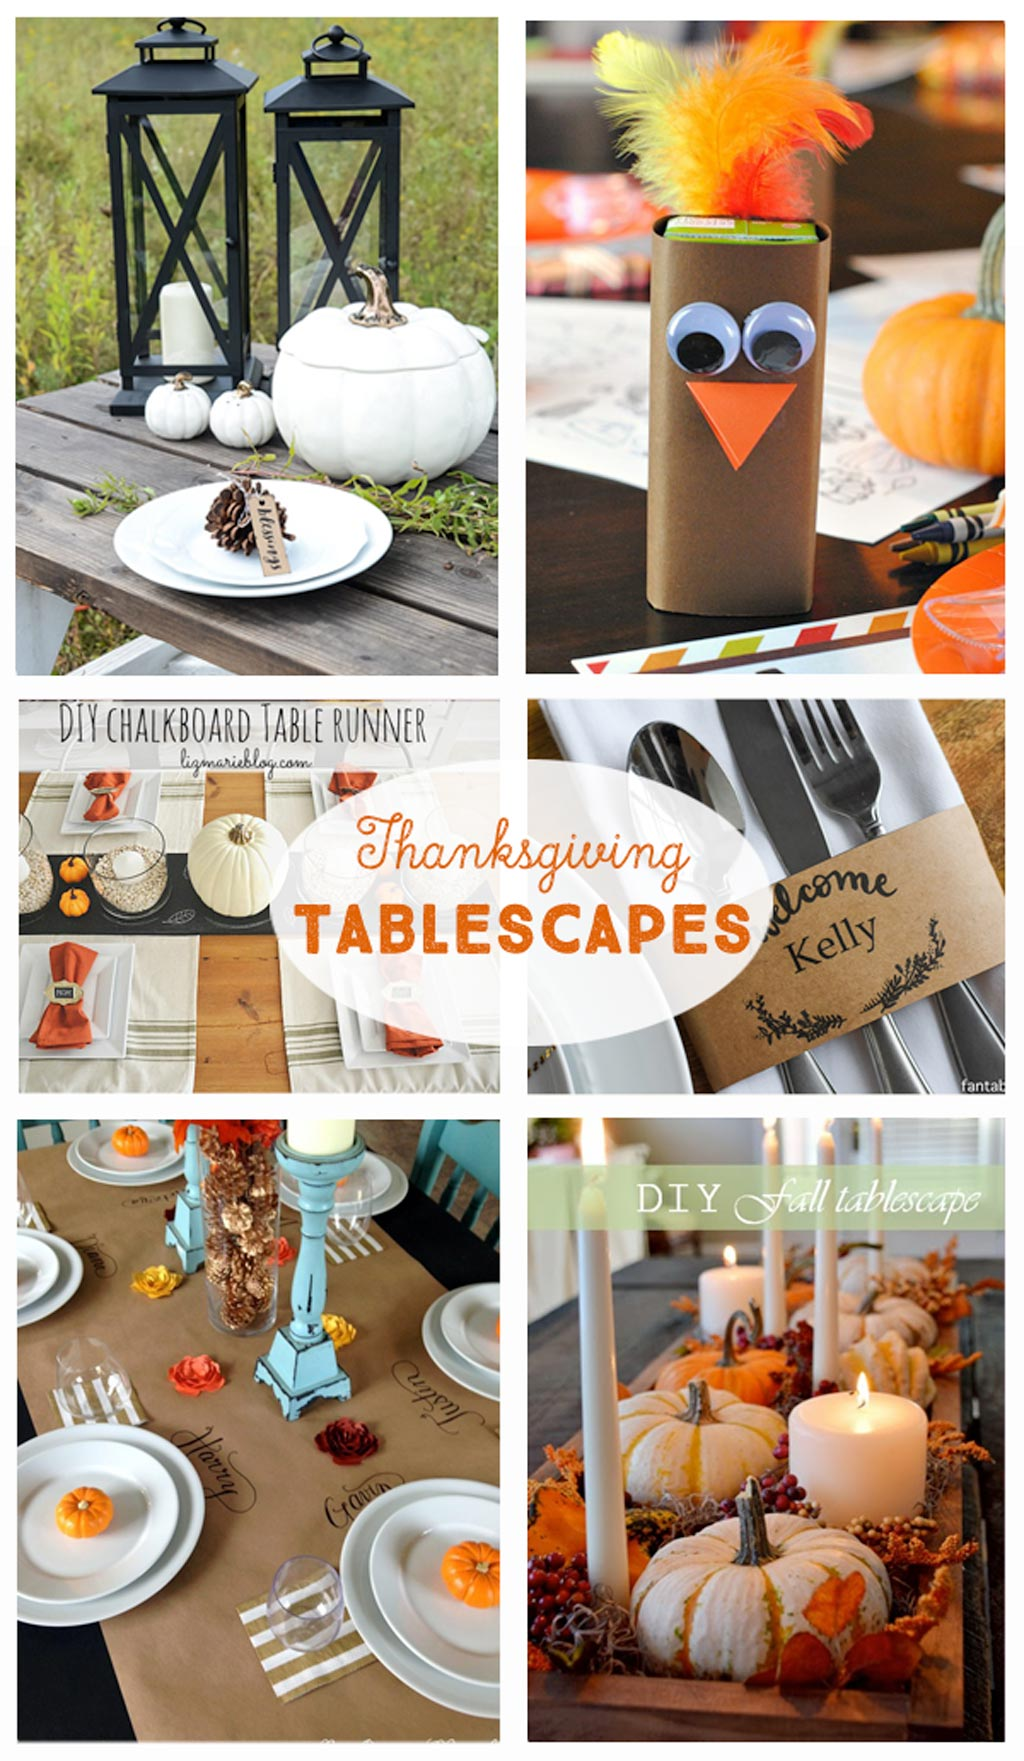 Best Diy Thanksgiving Tablescapes The Crafting Ch*Cks This Month